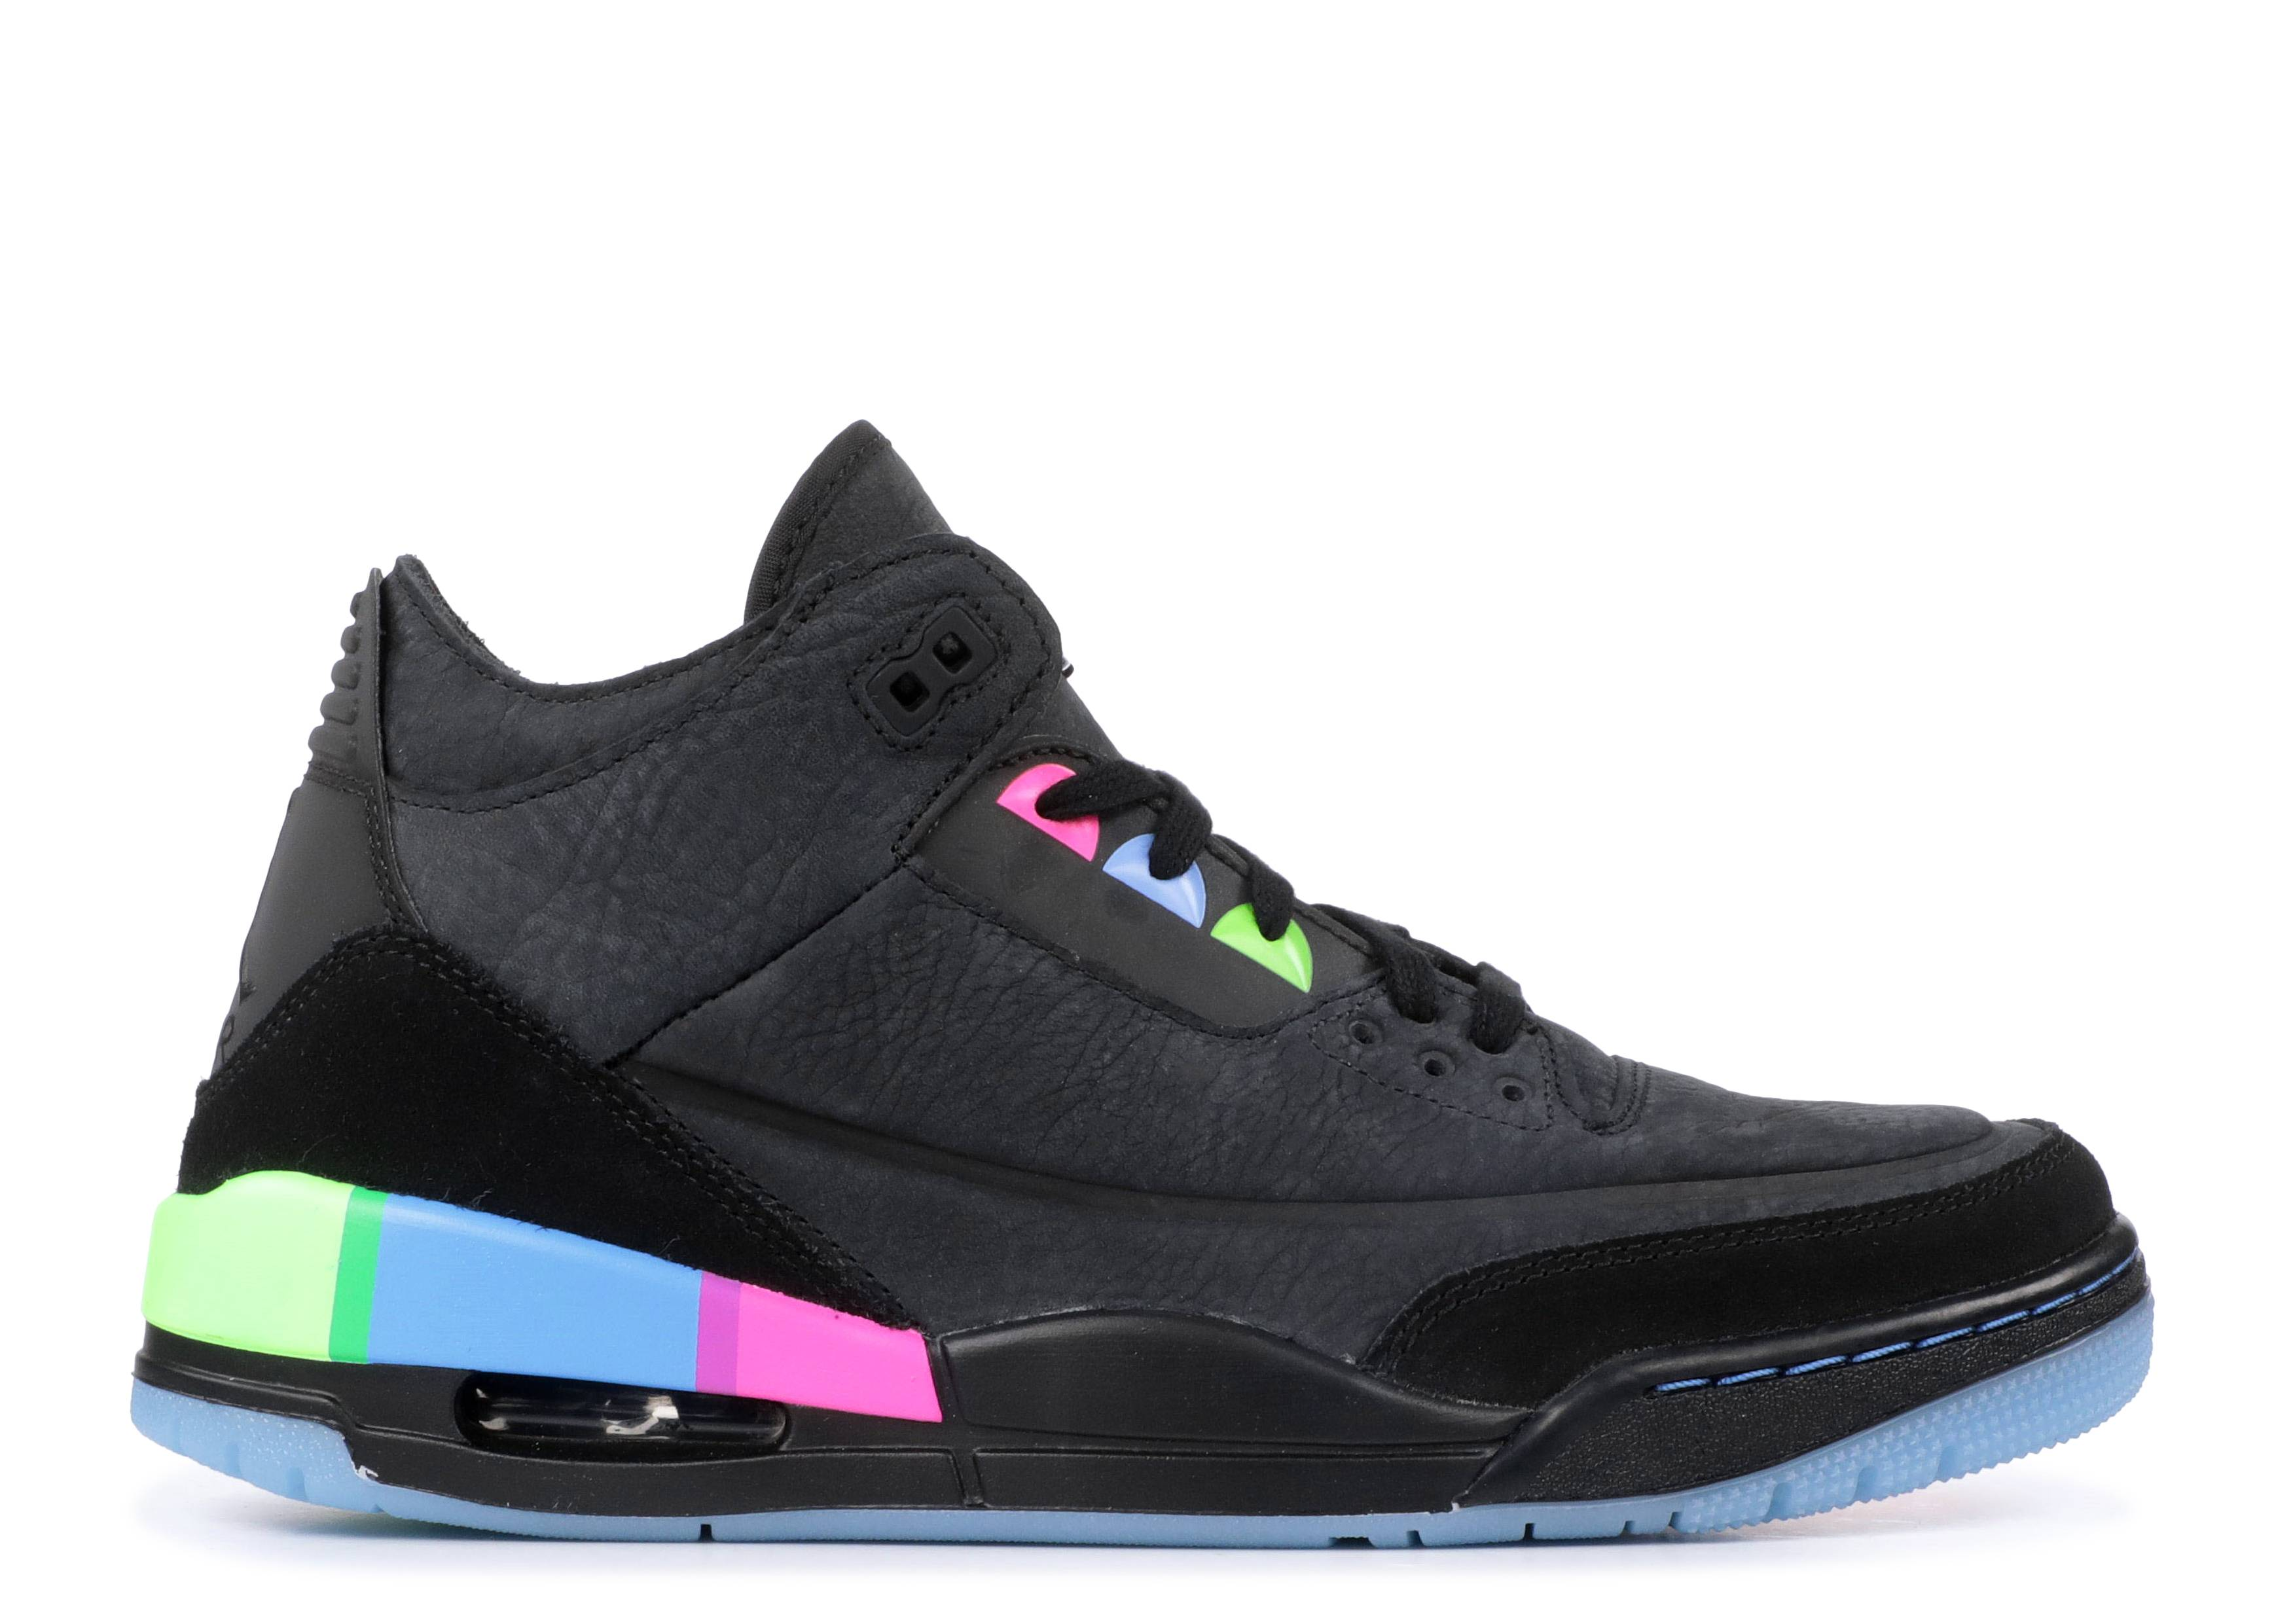 b6ed2e22409 Air Jordan 3 Retro Se Q54